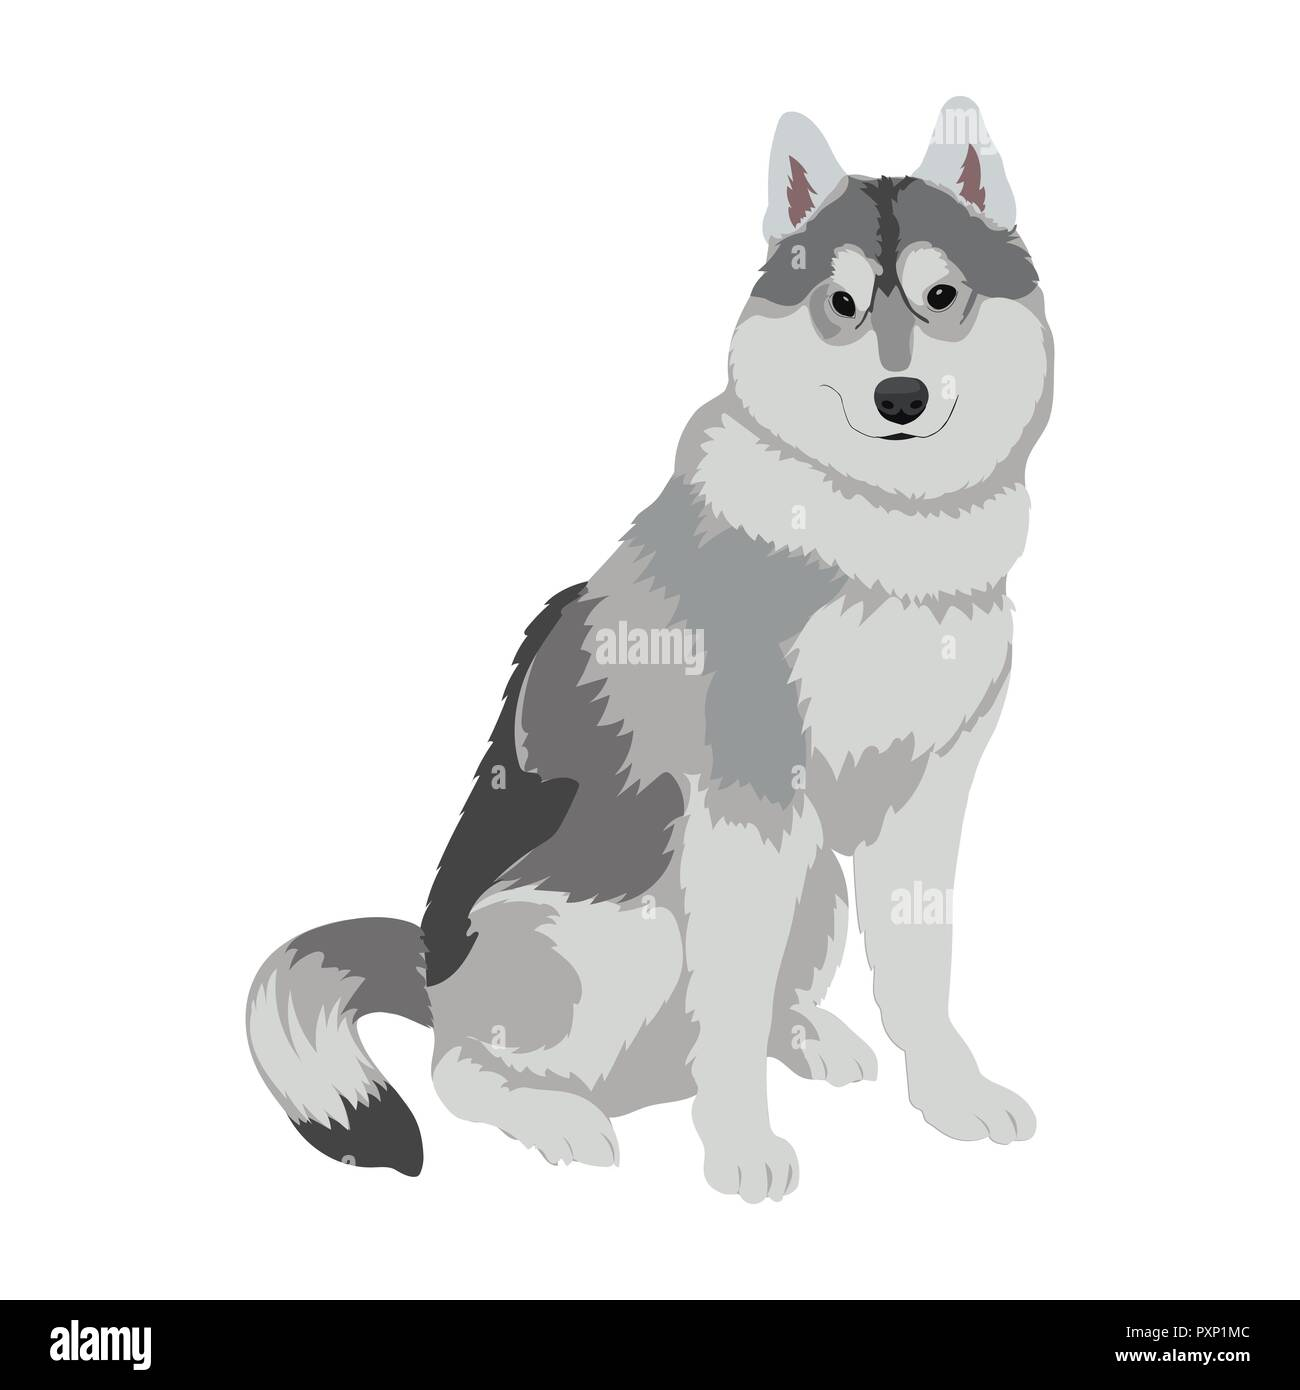 Husky dog sitting isolated on white background. Sled dog illustration. Cute Alaskan Malamute dog for your design. - Stock Vector